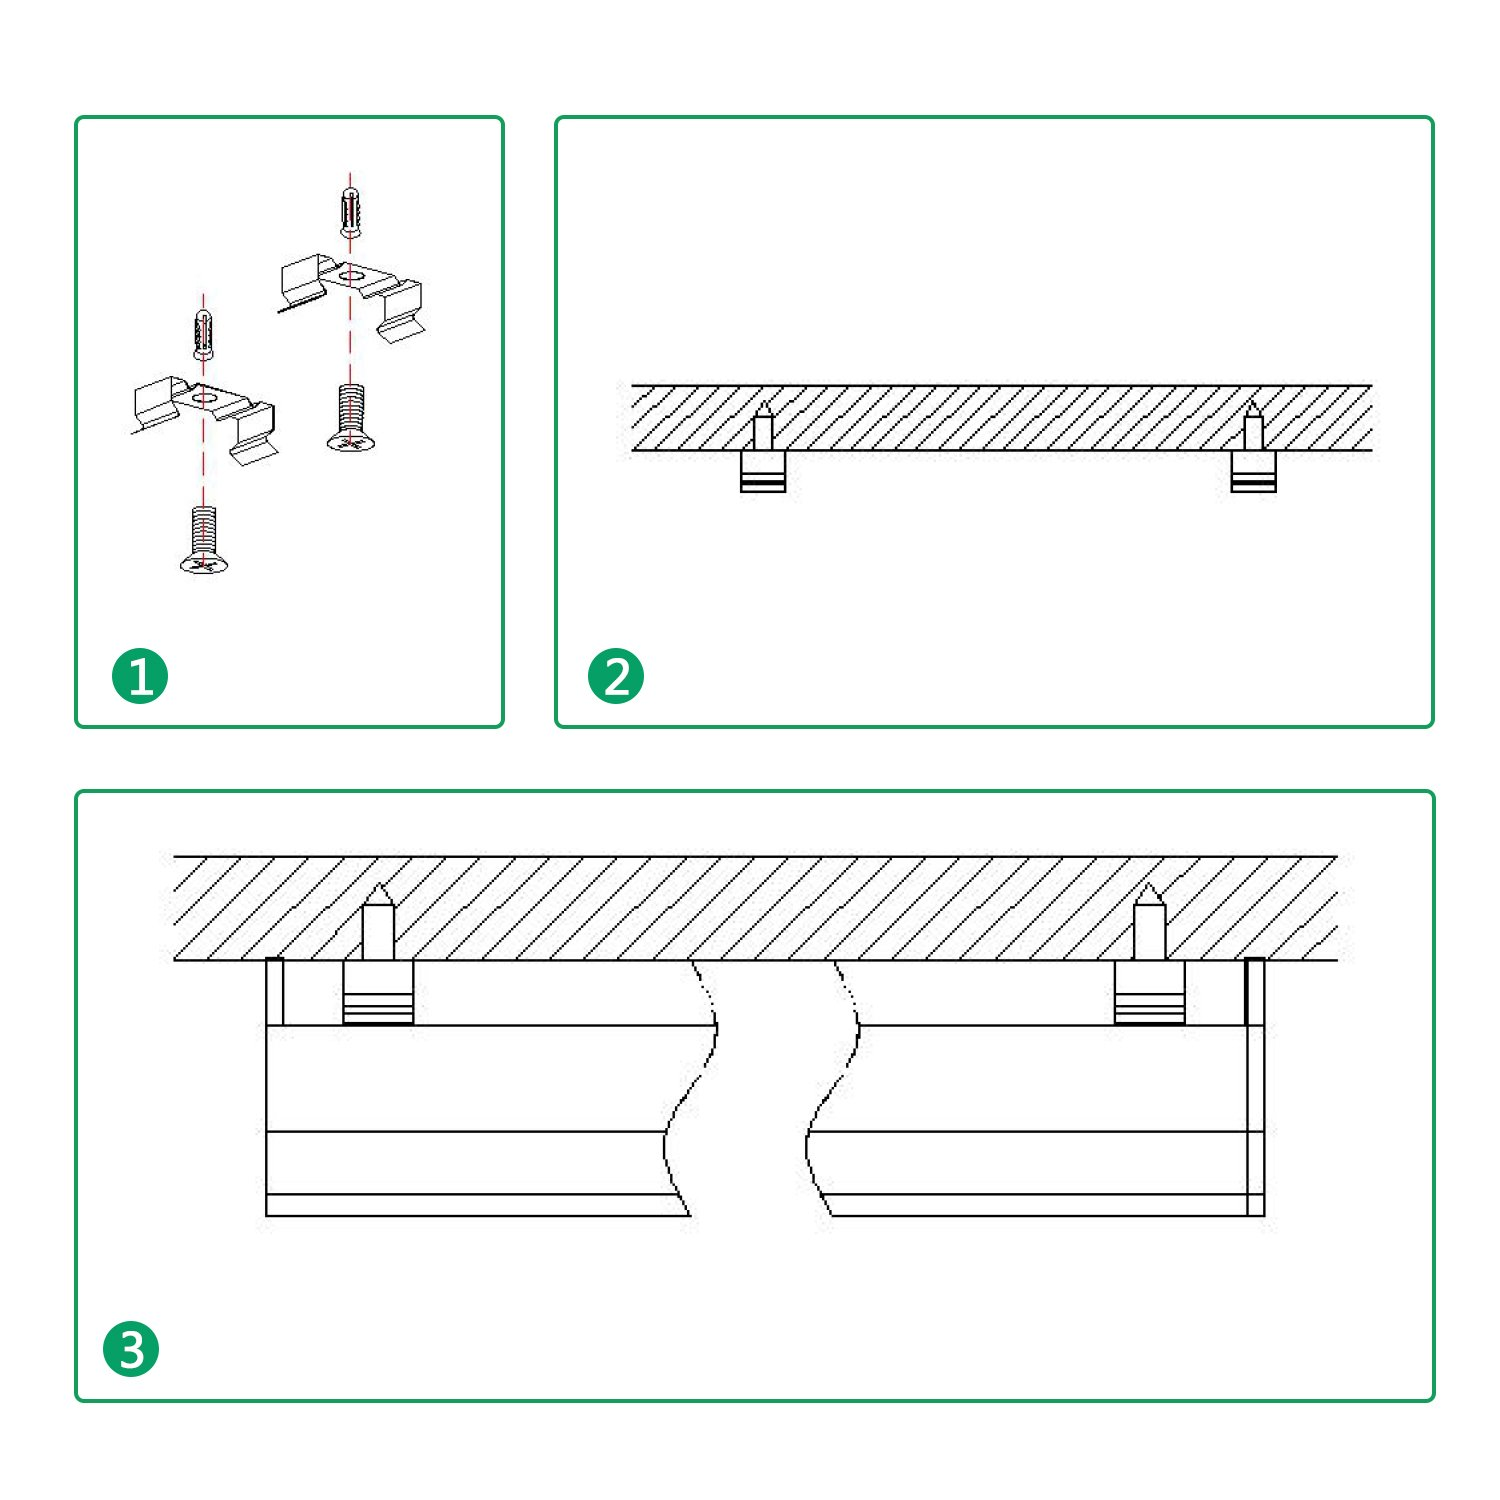 FrenchMay LED T5 mini utility linkable shop light 4ft, 22W, 85CRI, 2200Lumens, 5000K, 32w Fluorescent Equivalent, integrated ceiling light & under Cabinet shop light for garage, workshop, basement by FrenchMay (Image #4)